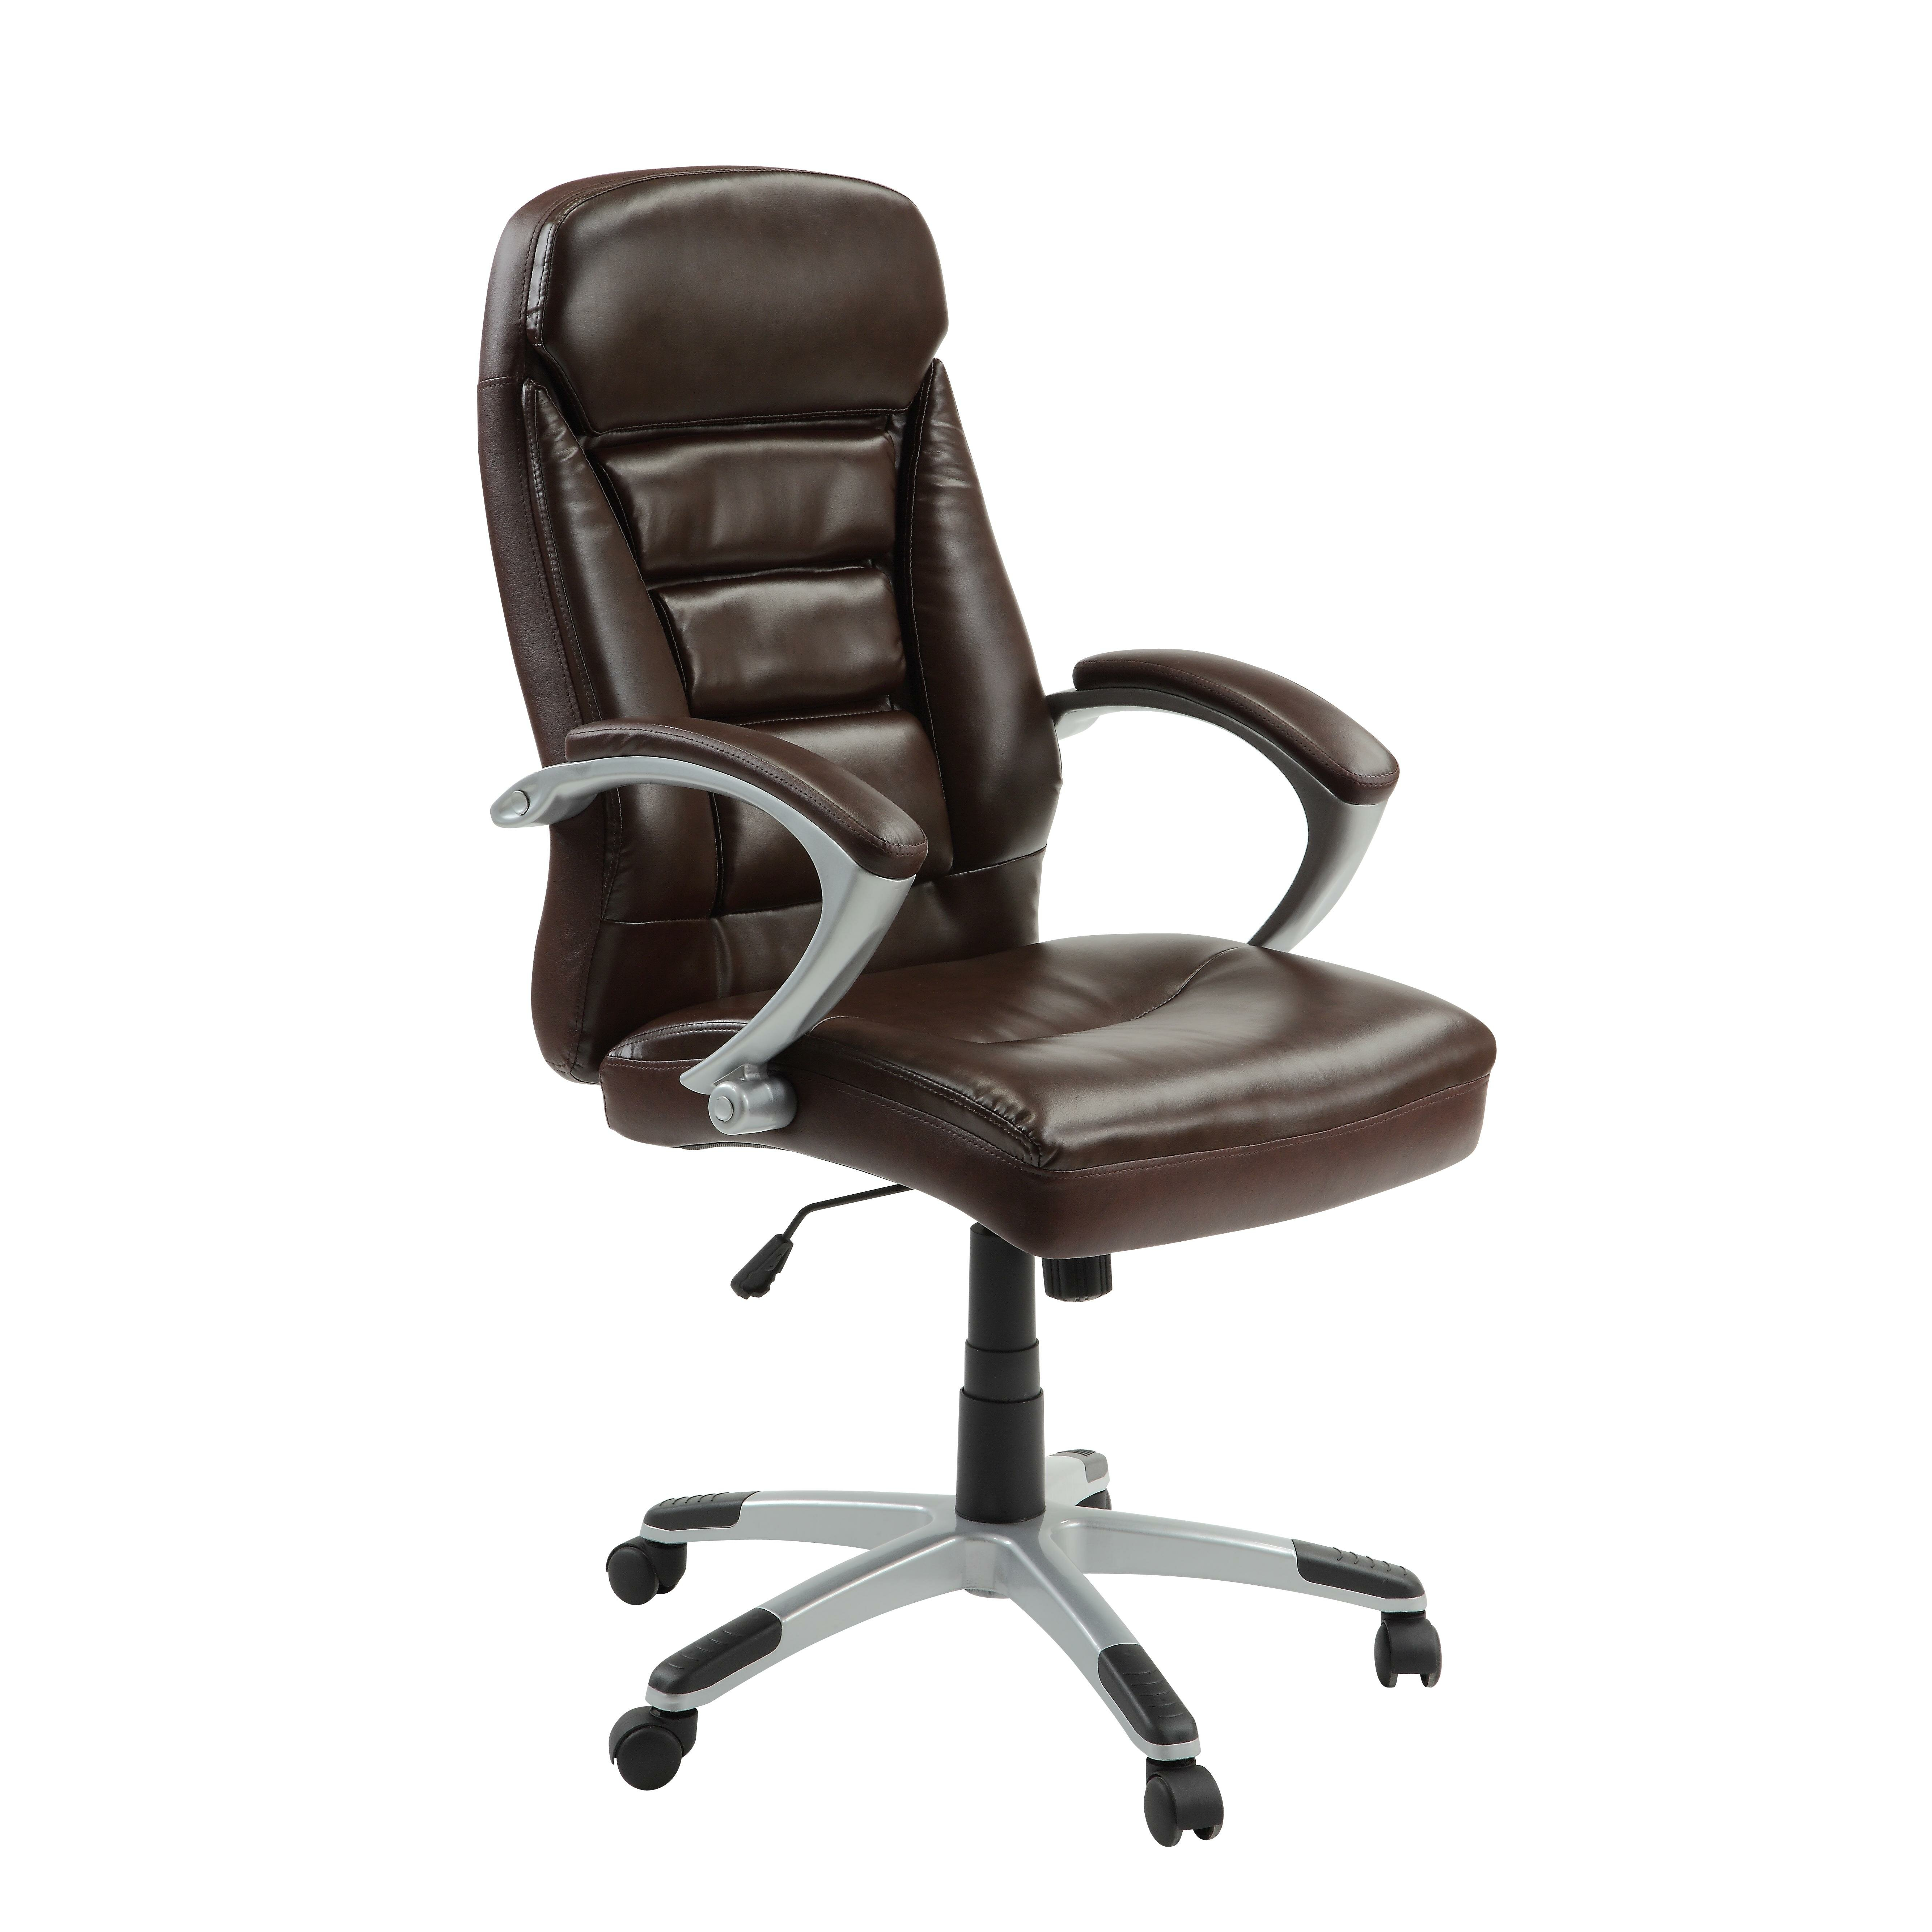 Innovex Excelsus High Back Leather Executive Chair